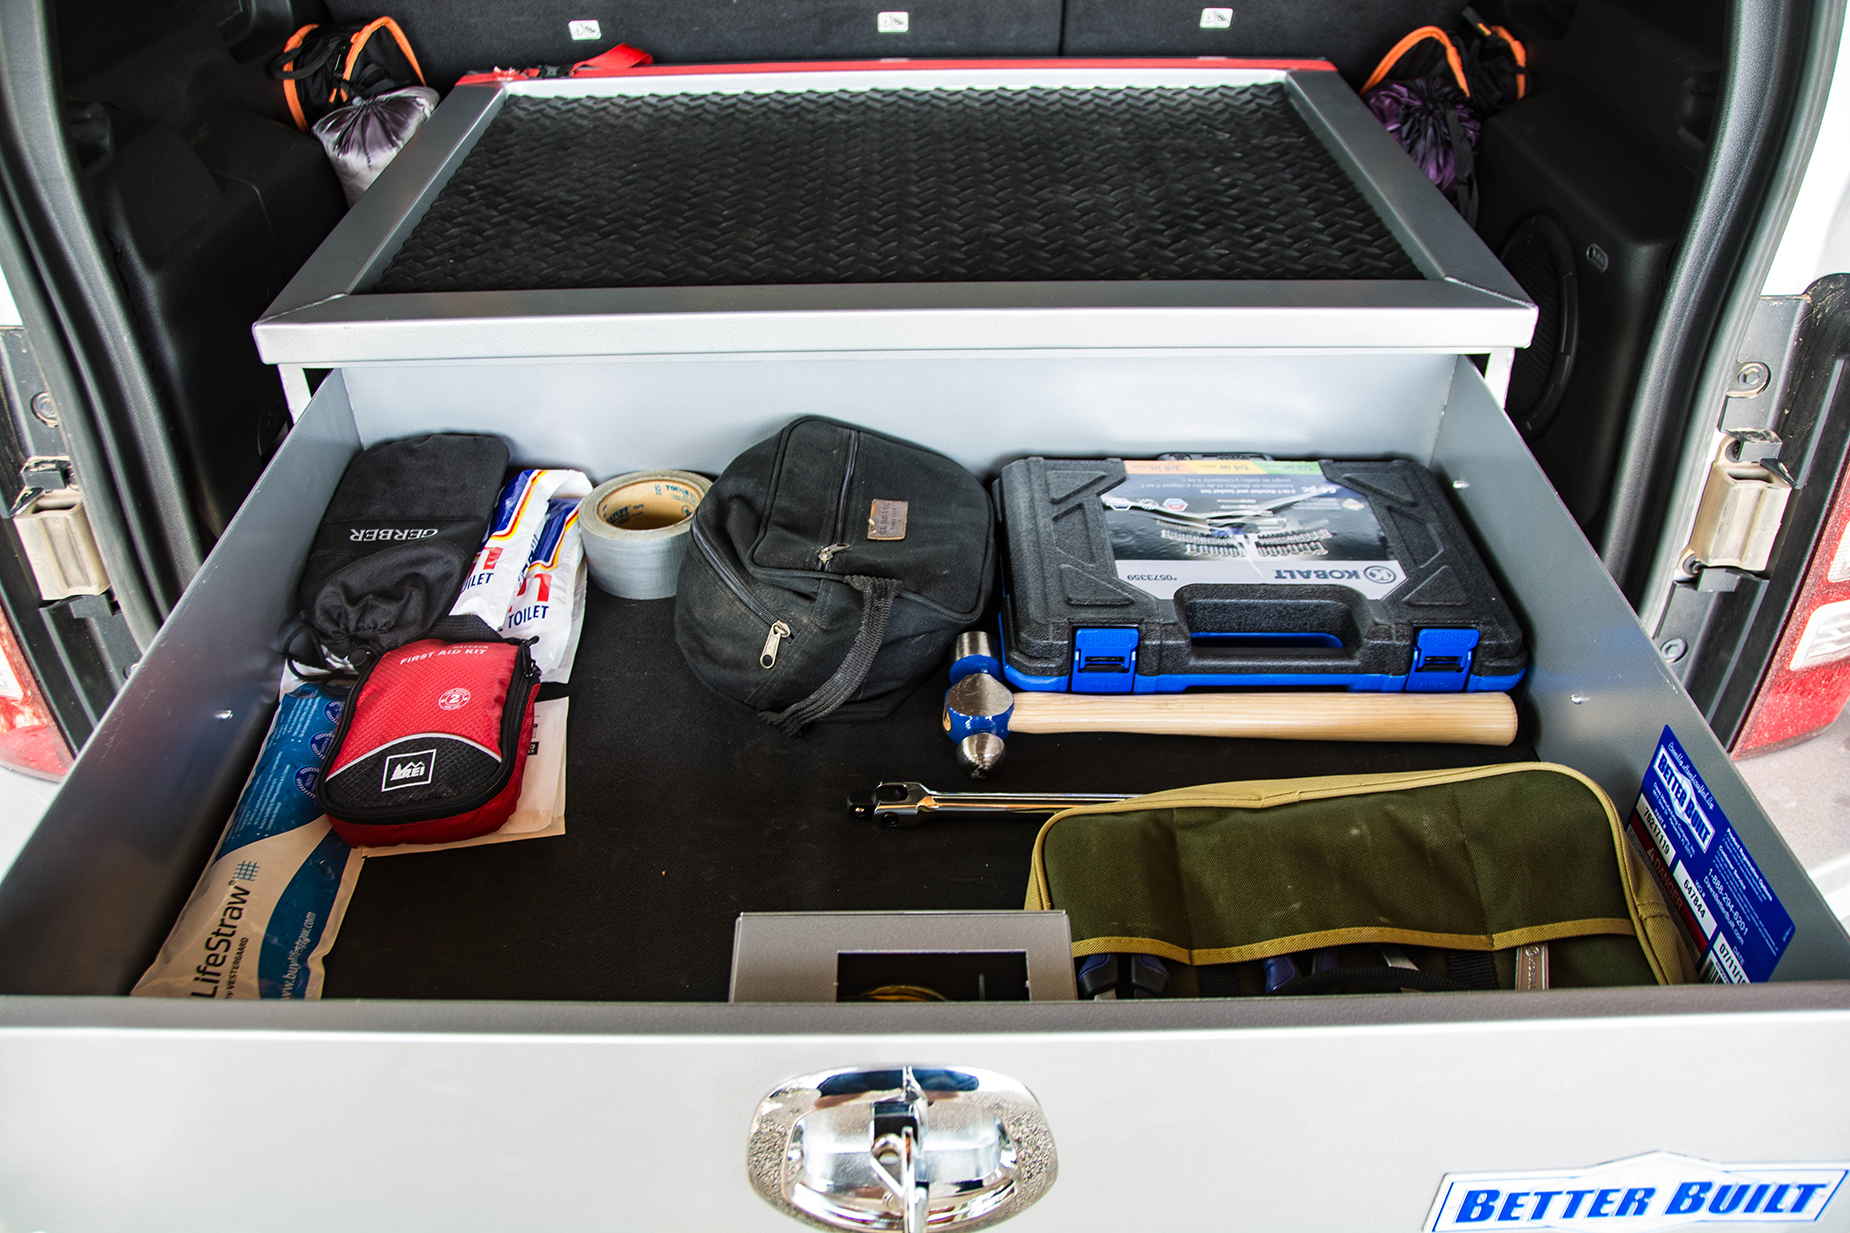 Here's the drawer reloaded and fully opened. We have additional equipment in mind and plenty of room for it. As you can see there's also room for soft items between the sides of the unit and the sides of the vehicle.